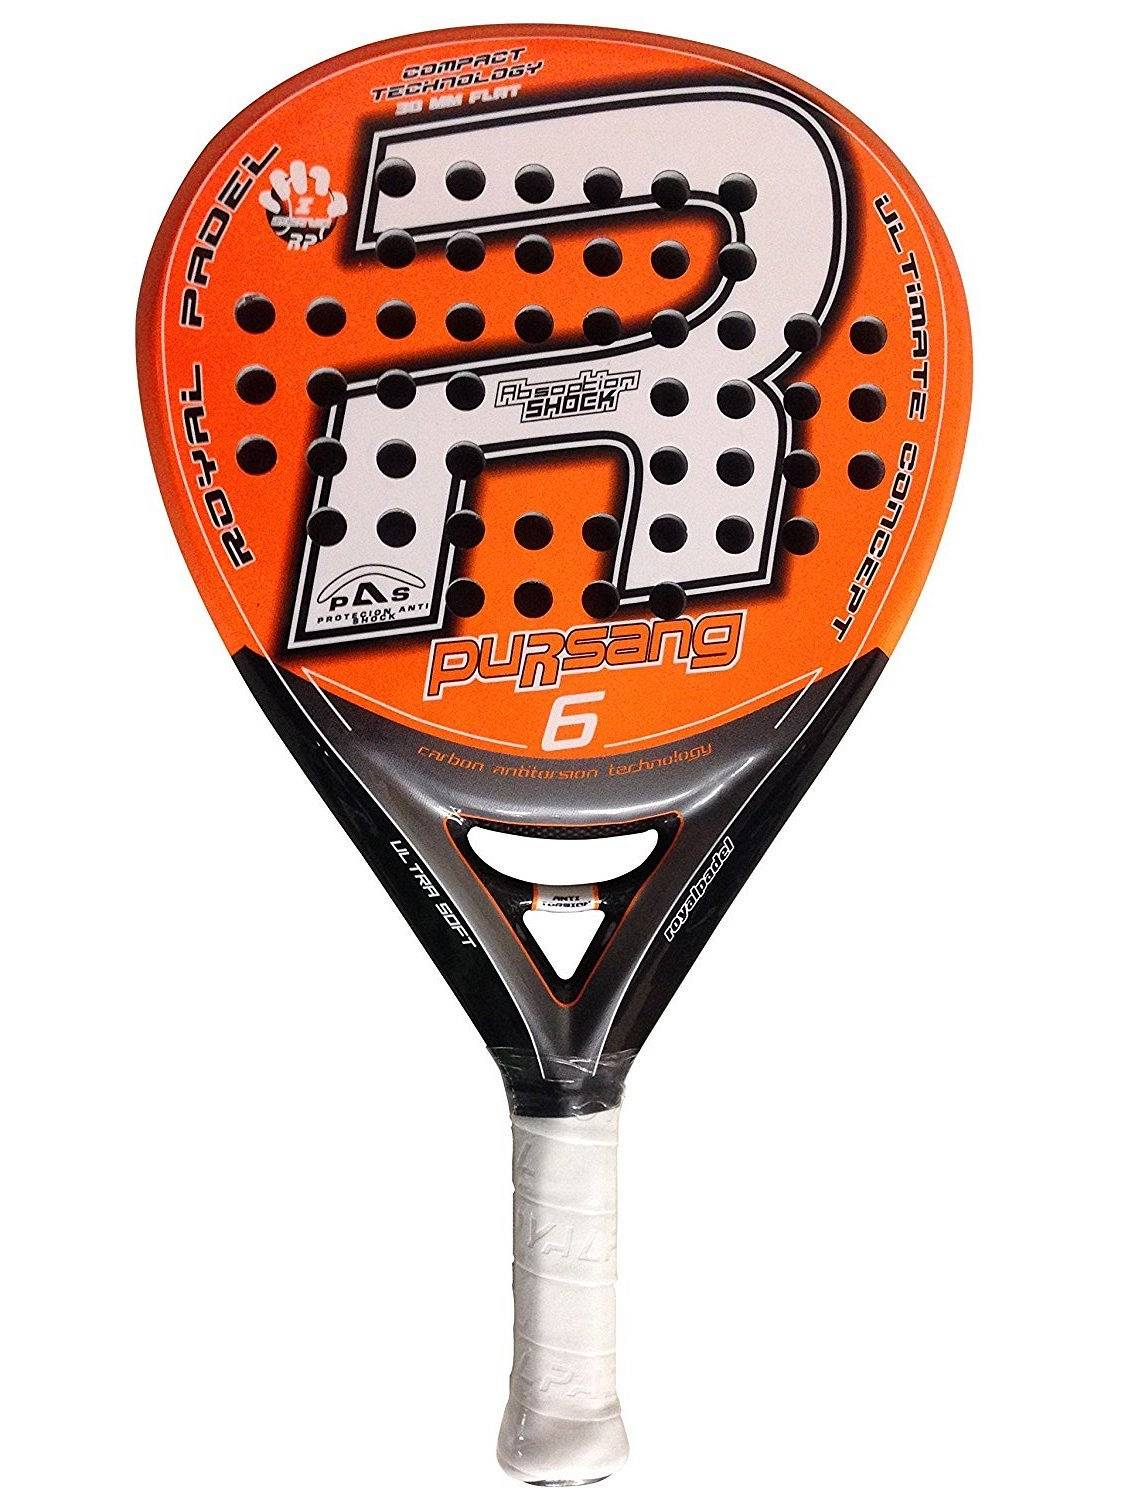 Royal Padel Racchetta Paddle Royal Padel RP 787 PURSANG 2018